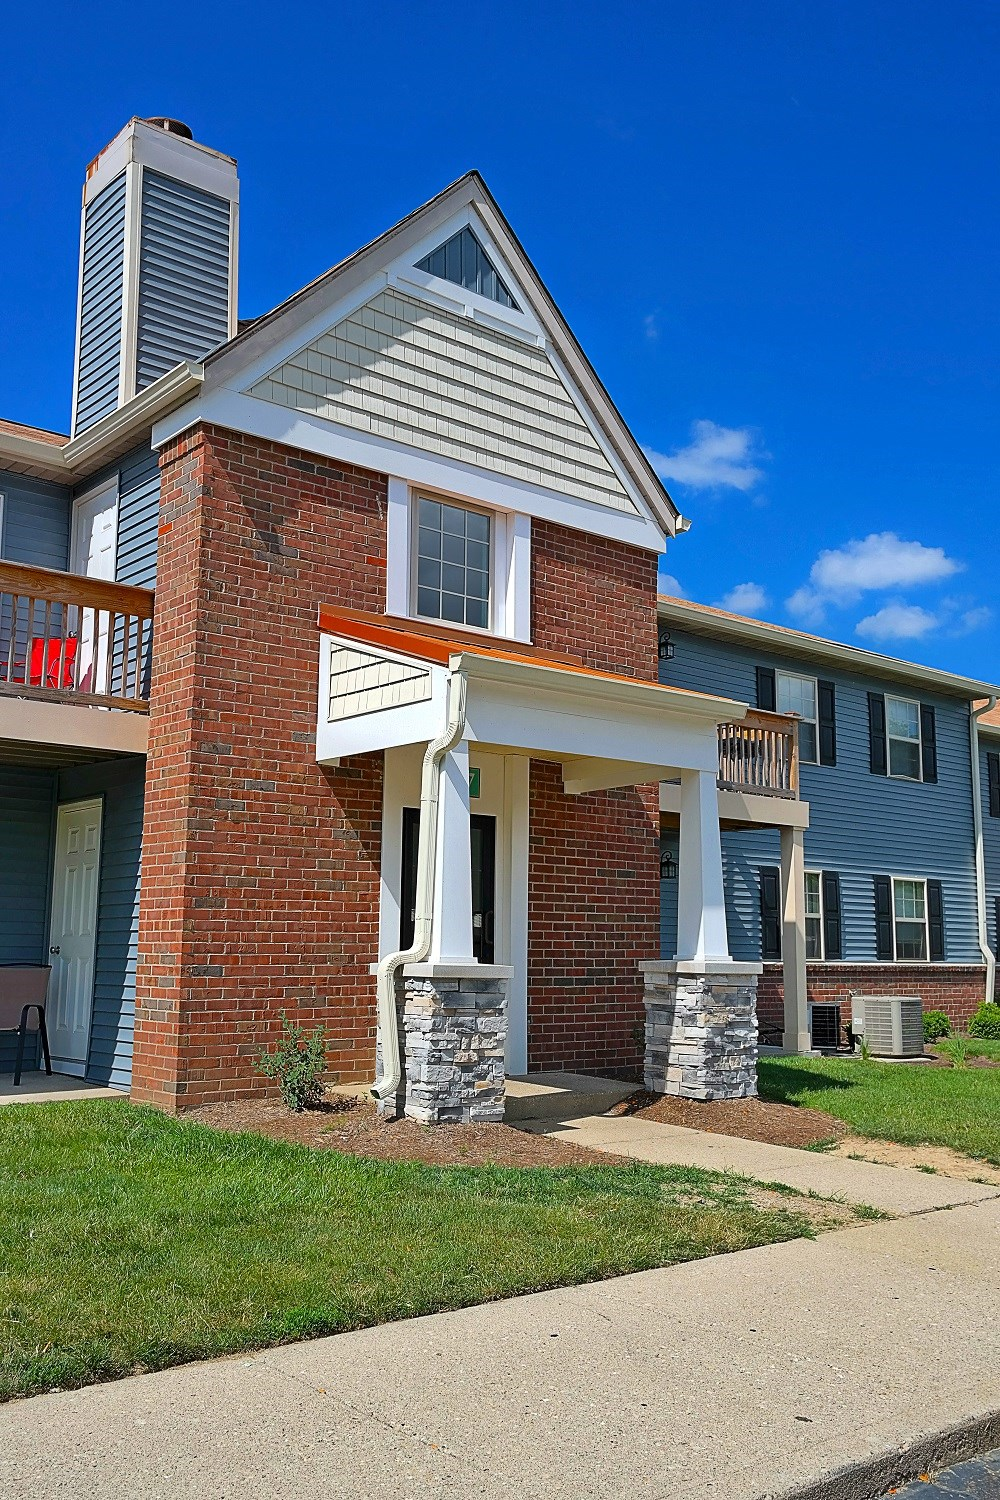 teal run apartments  2302 windsong drive  indianapolis  in